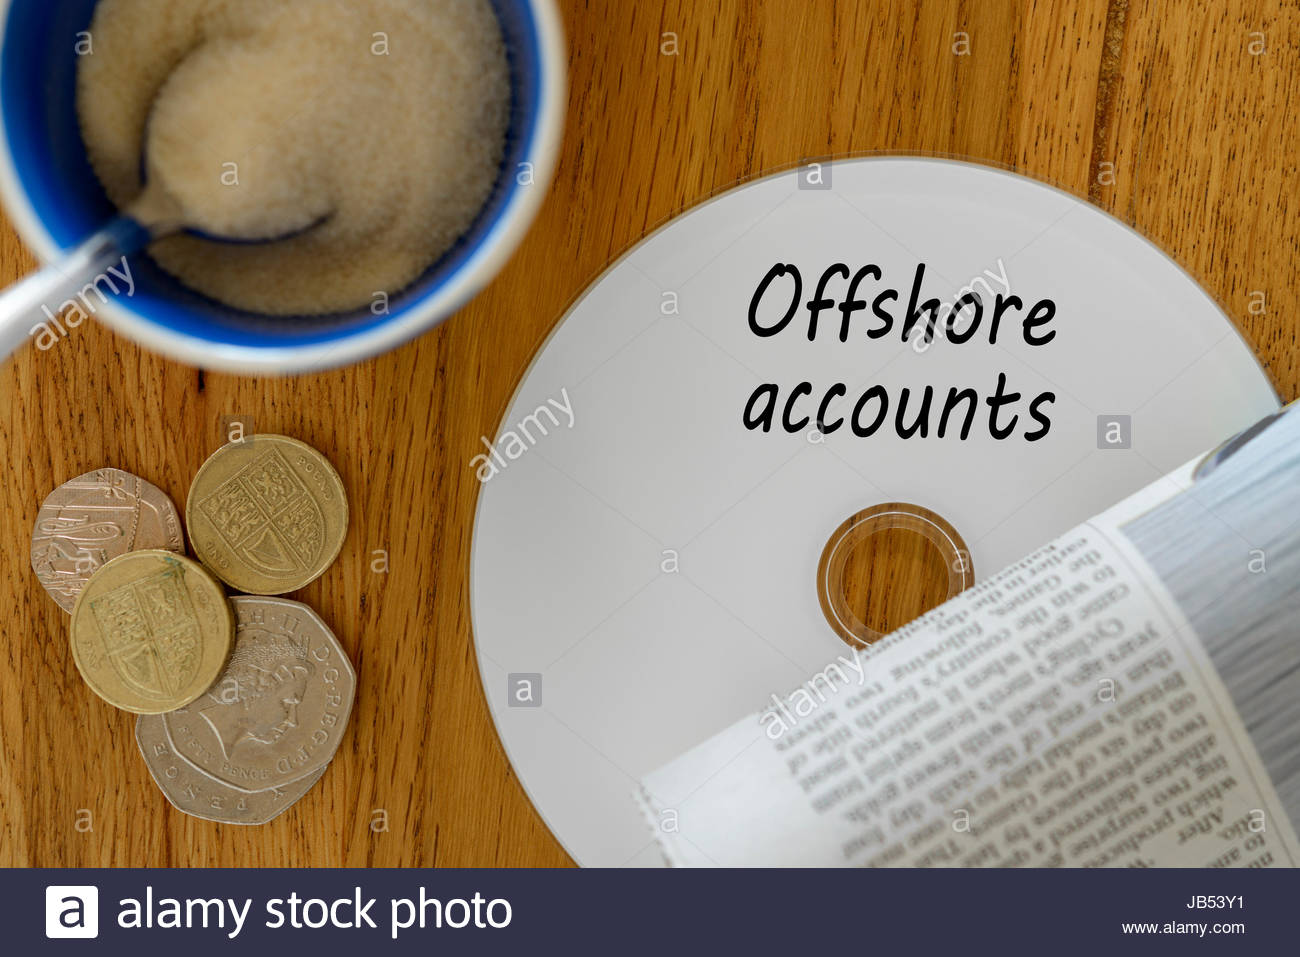 Offshore accounts, data disc left on cafe table, Dorset, England. - Stock Image